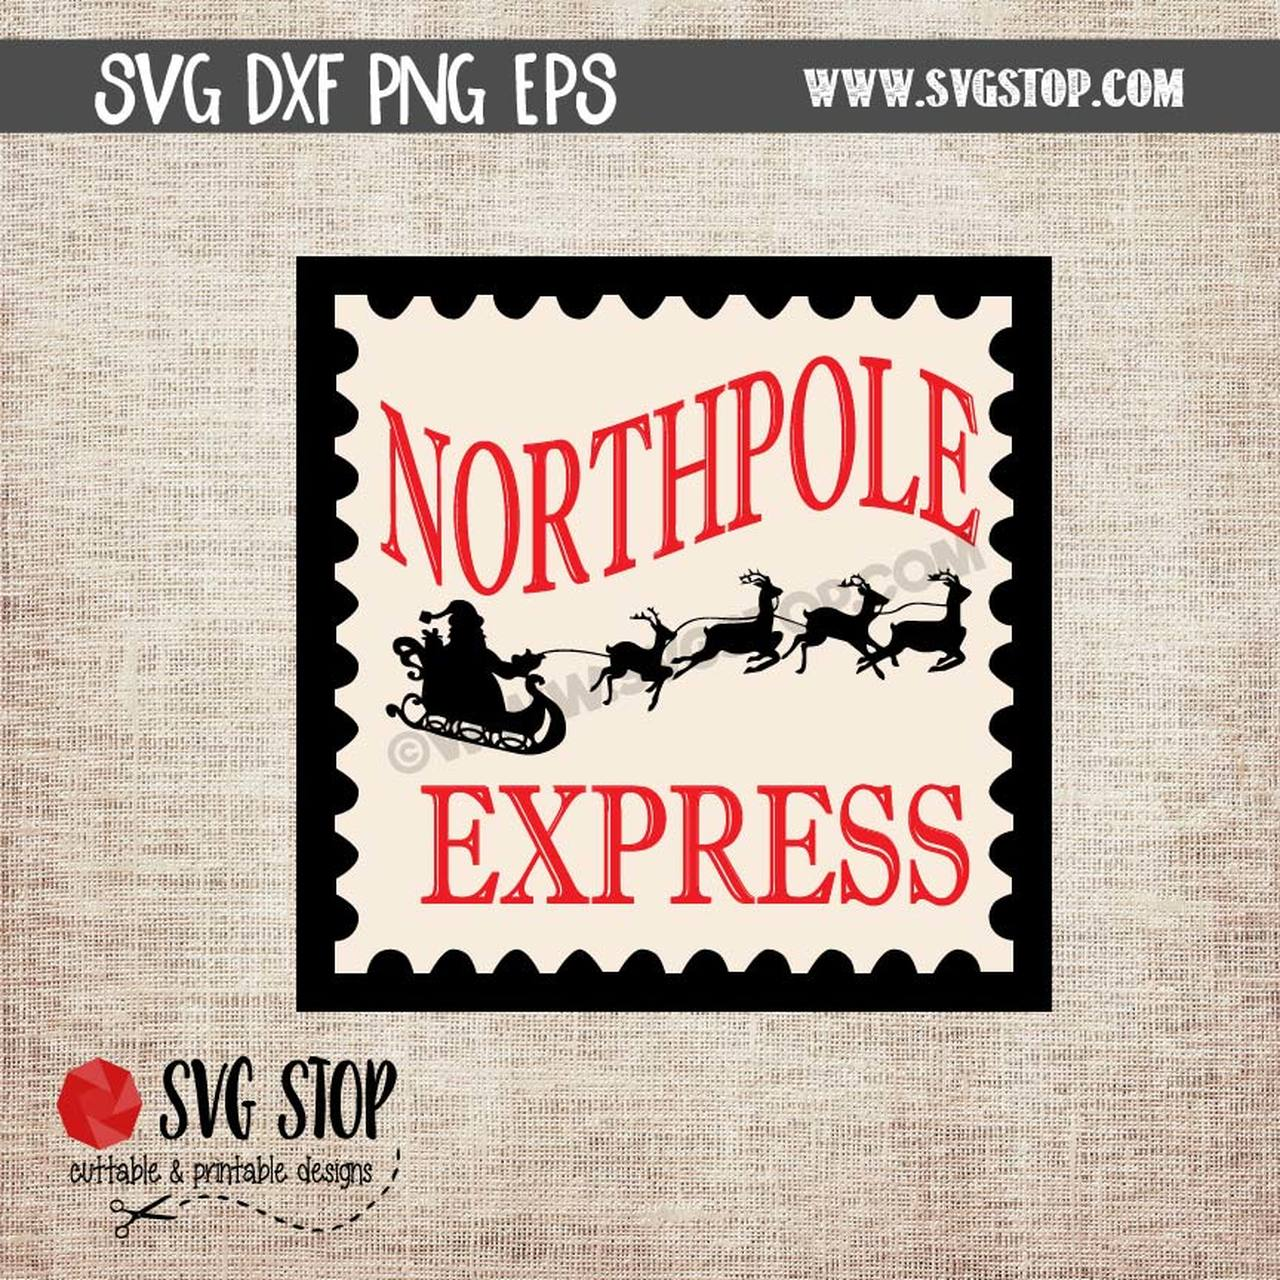 Northpole Express Postage Stamp SVG DXF EPS PNG Clipart Cut file.